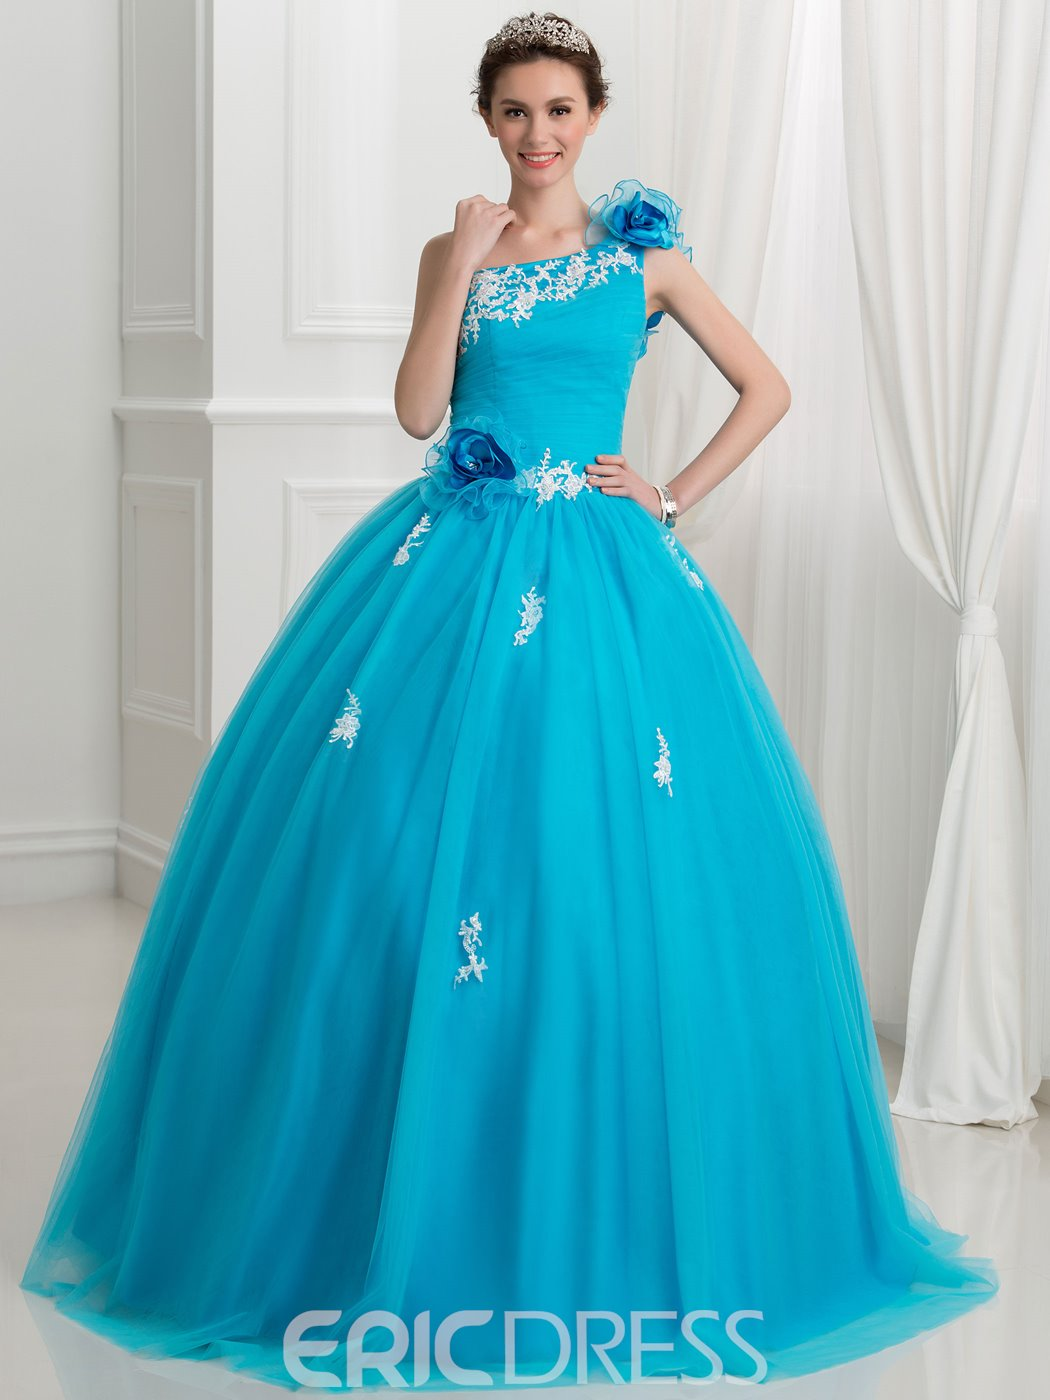 Ericdress One Shoulder Appliques Flowers Ball Gown Quinceanera Dress